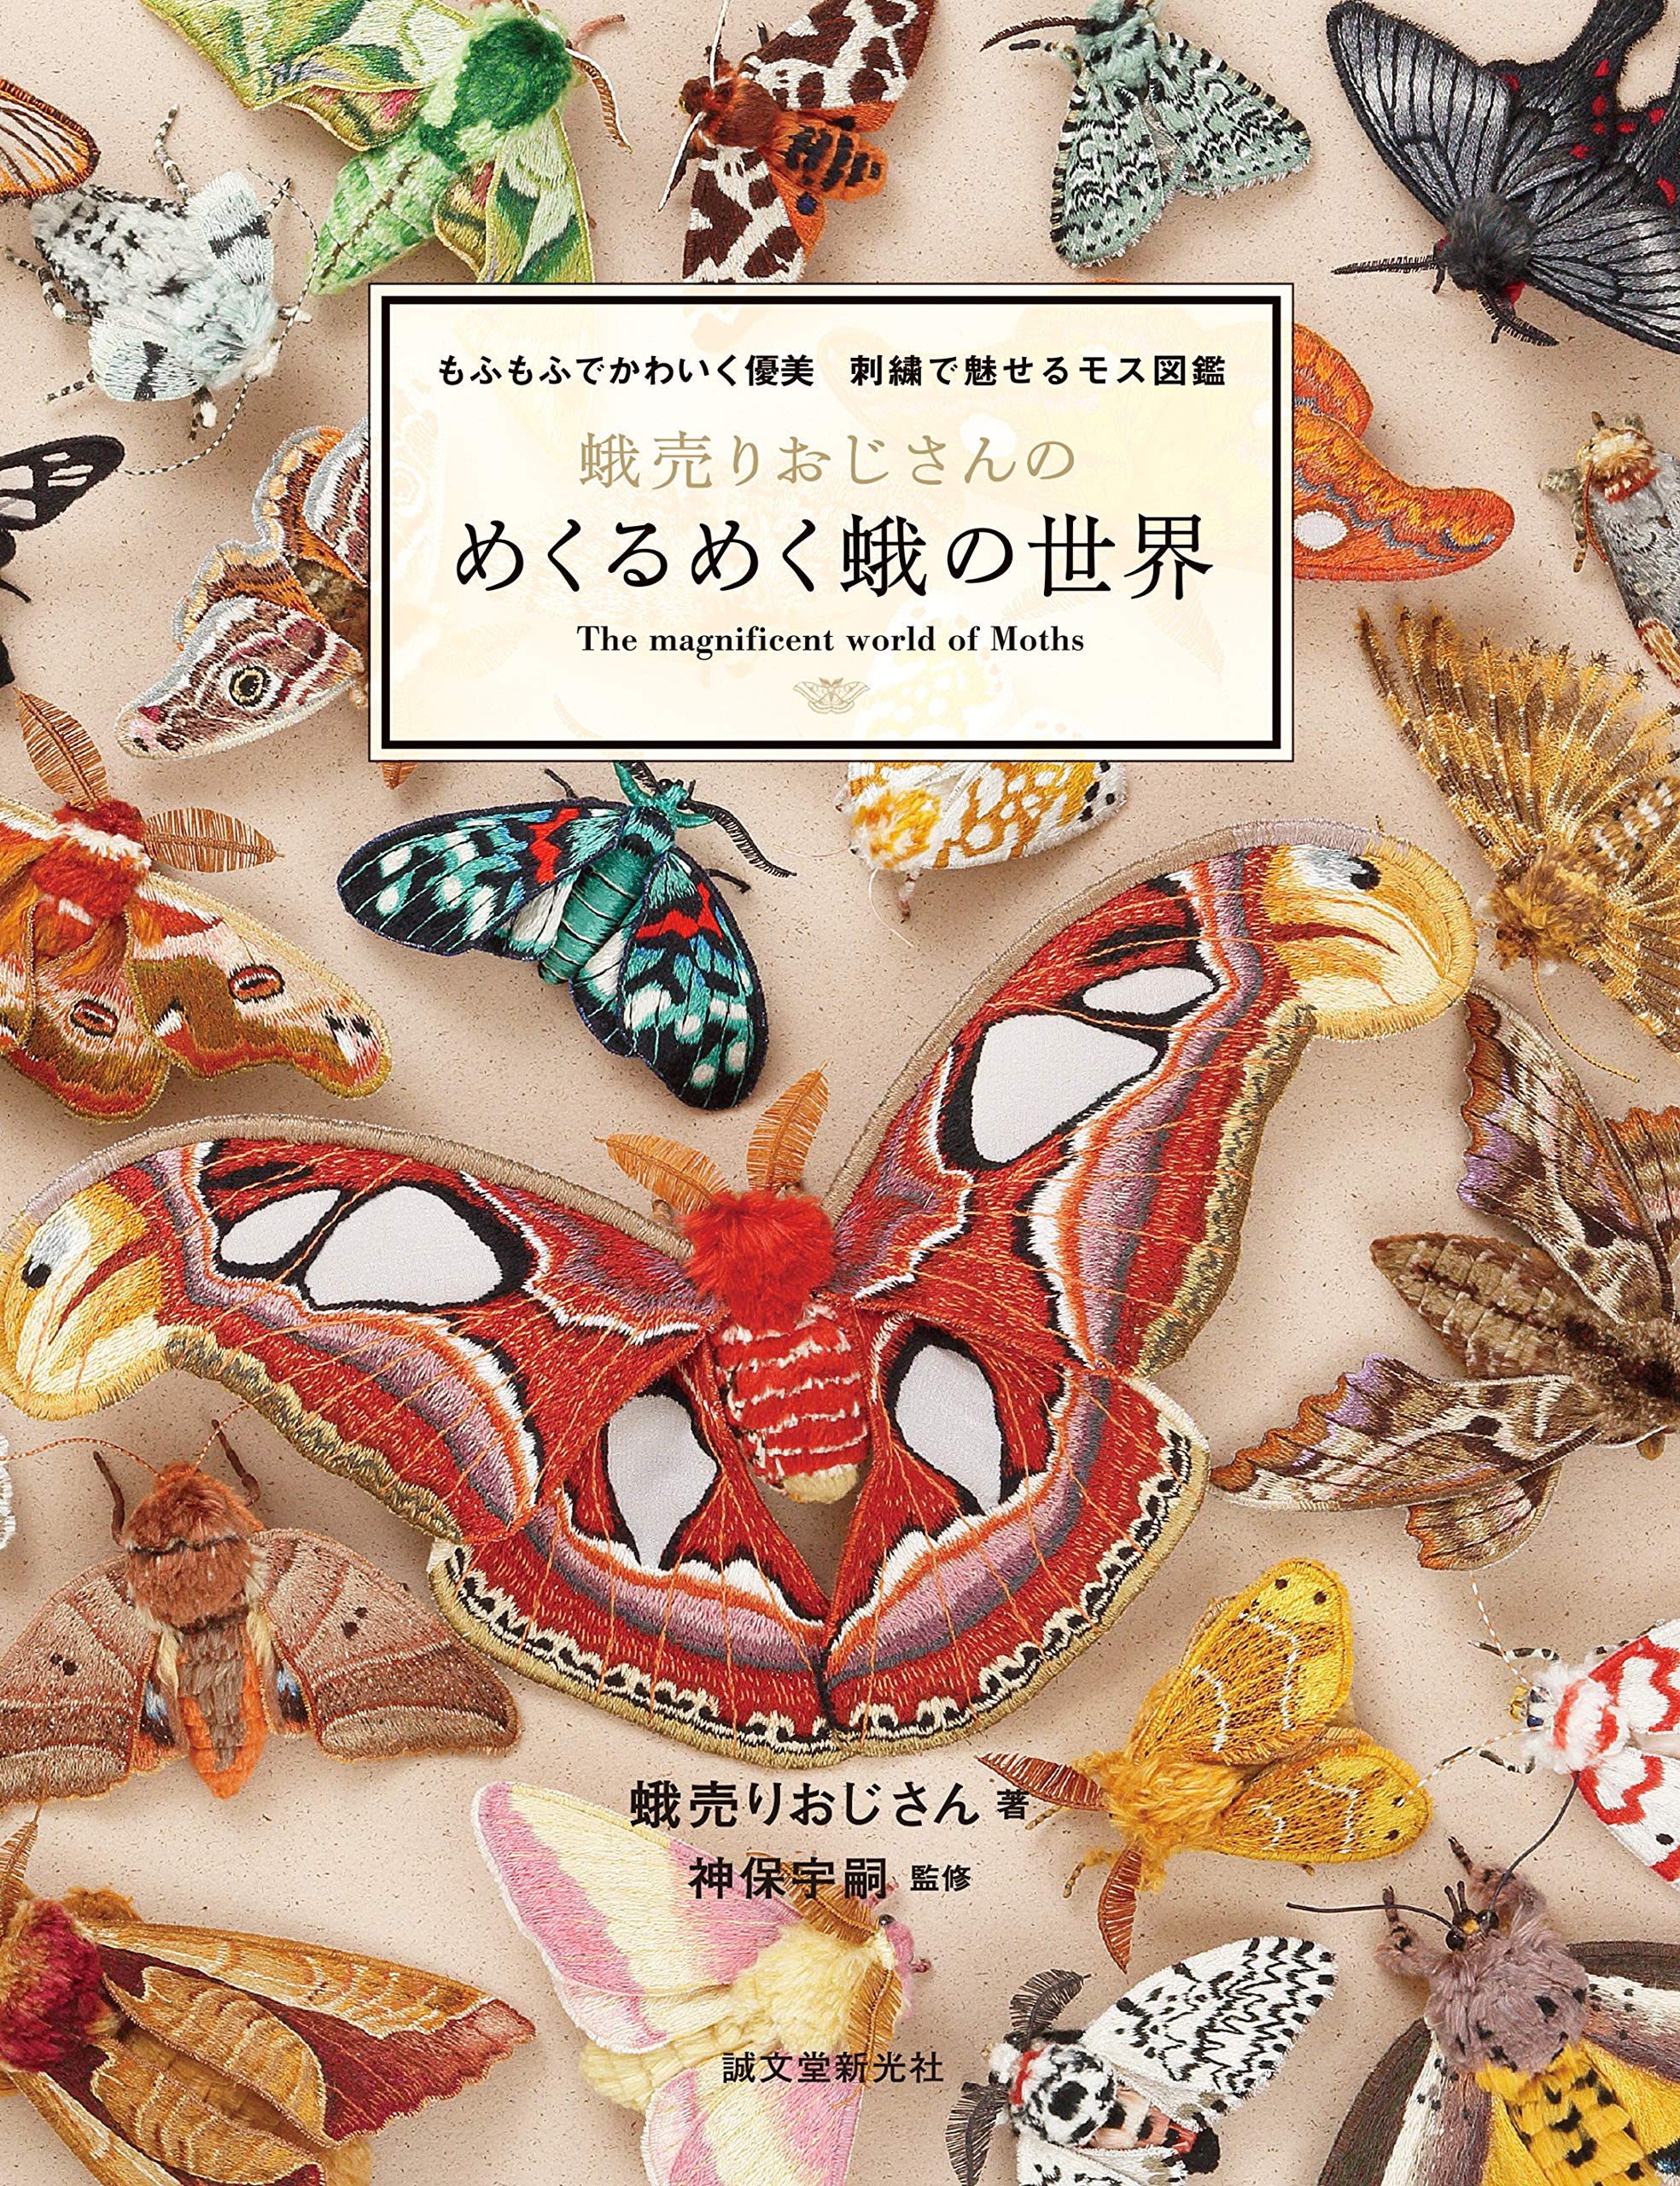 Tatsumi The magnificent world of moths